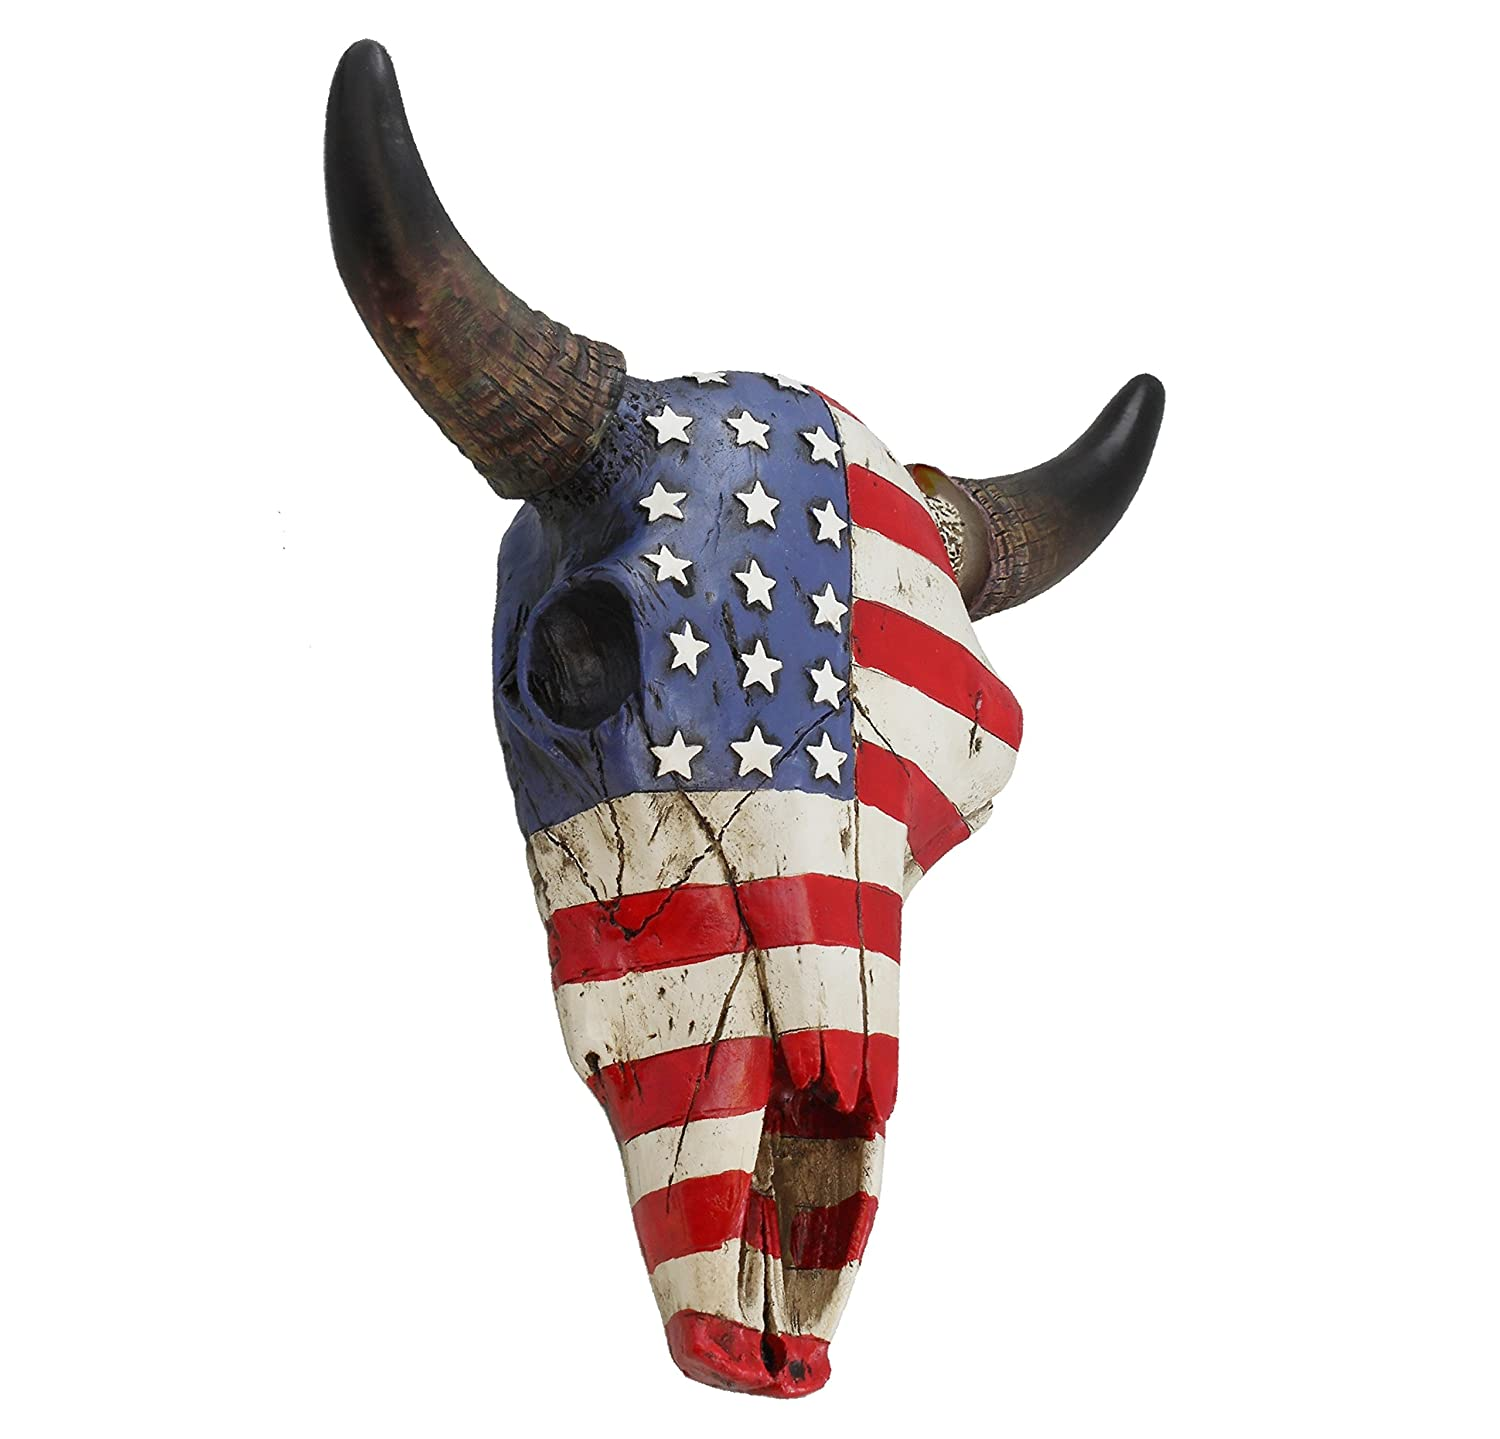 Top Brass USA Flag Faux Steer Bull Cow Skull - Wall Mount Head - Rustic Western American Art Decor